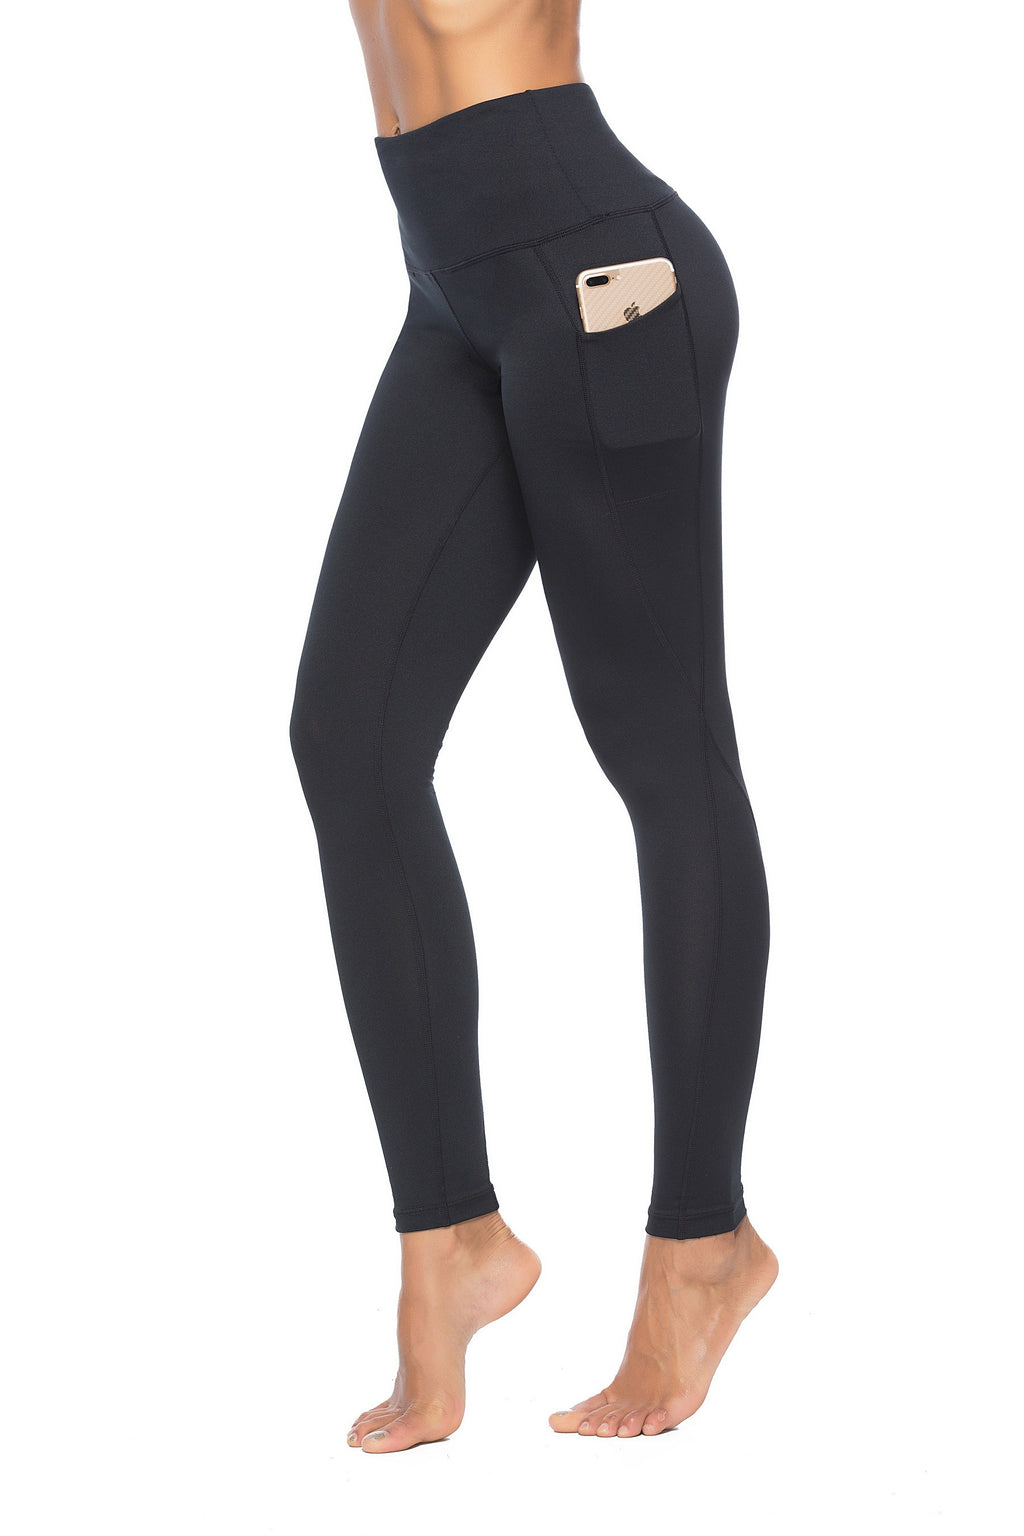 Athletic High Waist Pocket Leggings